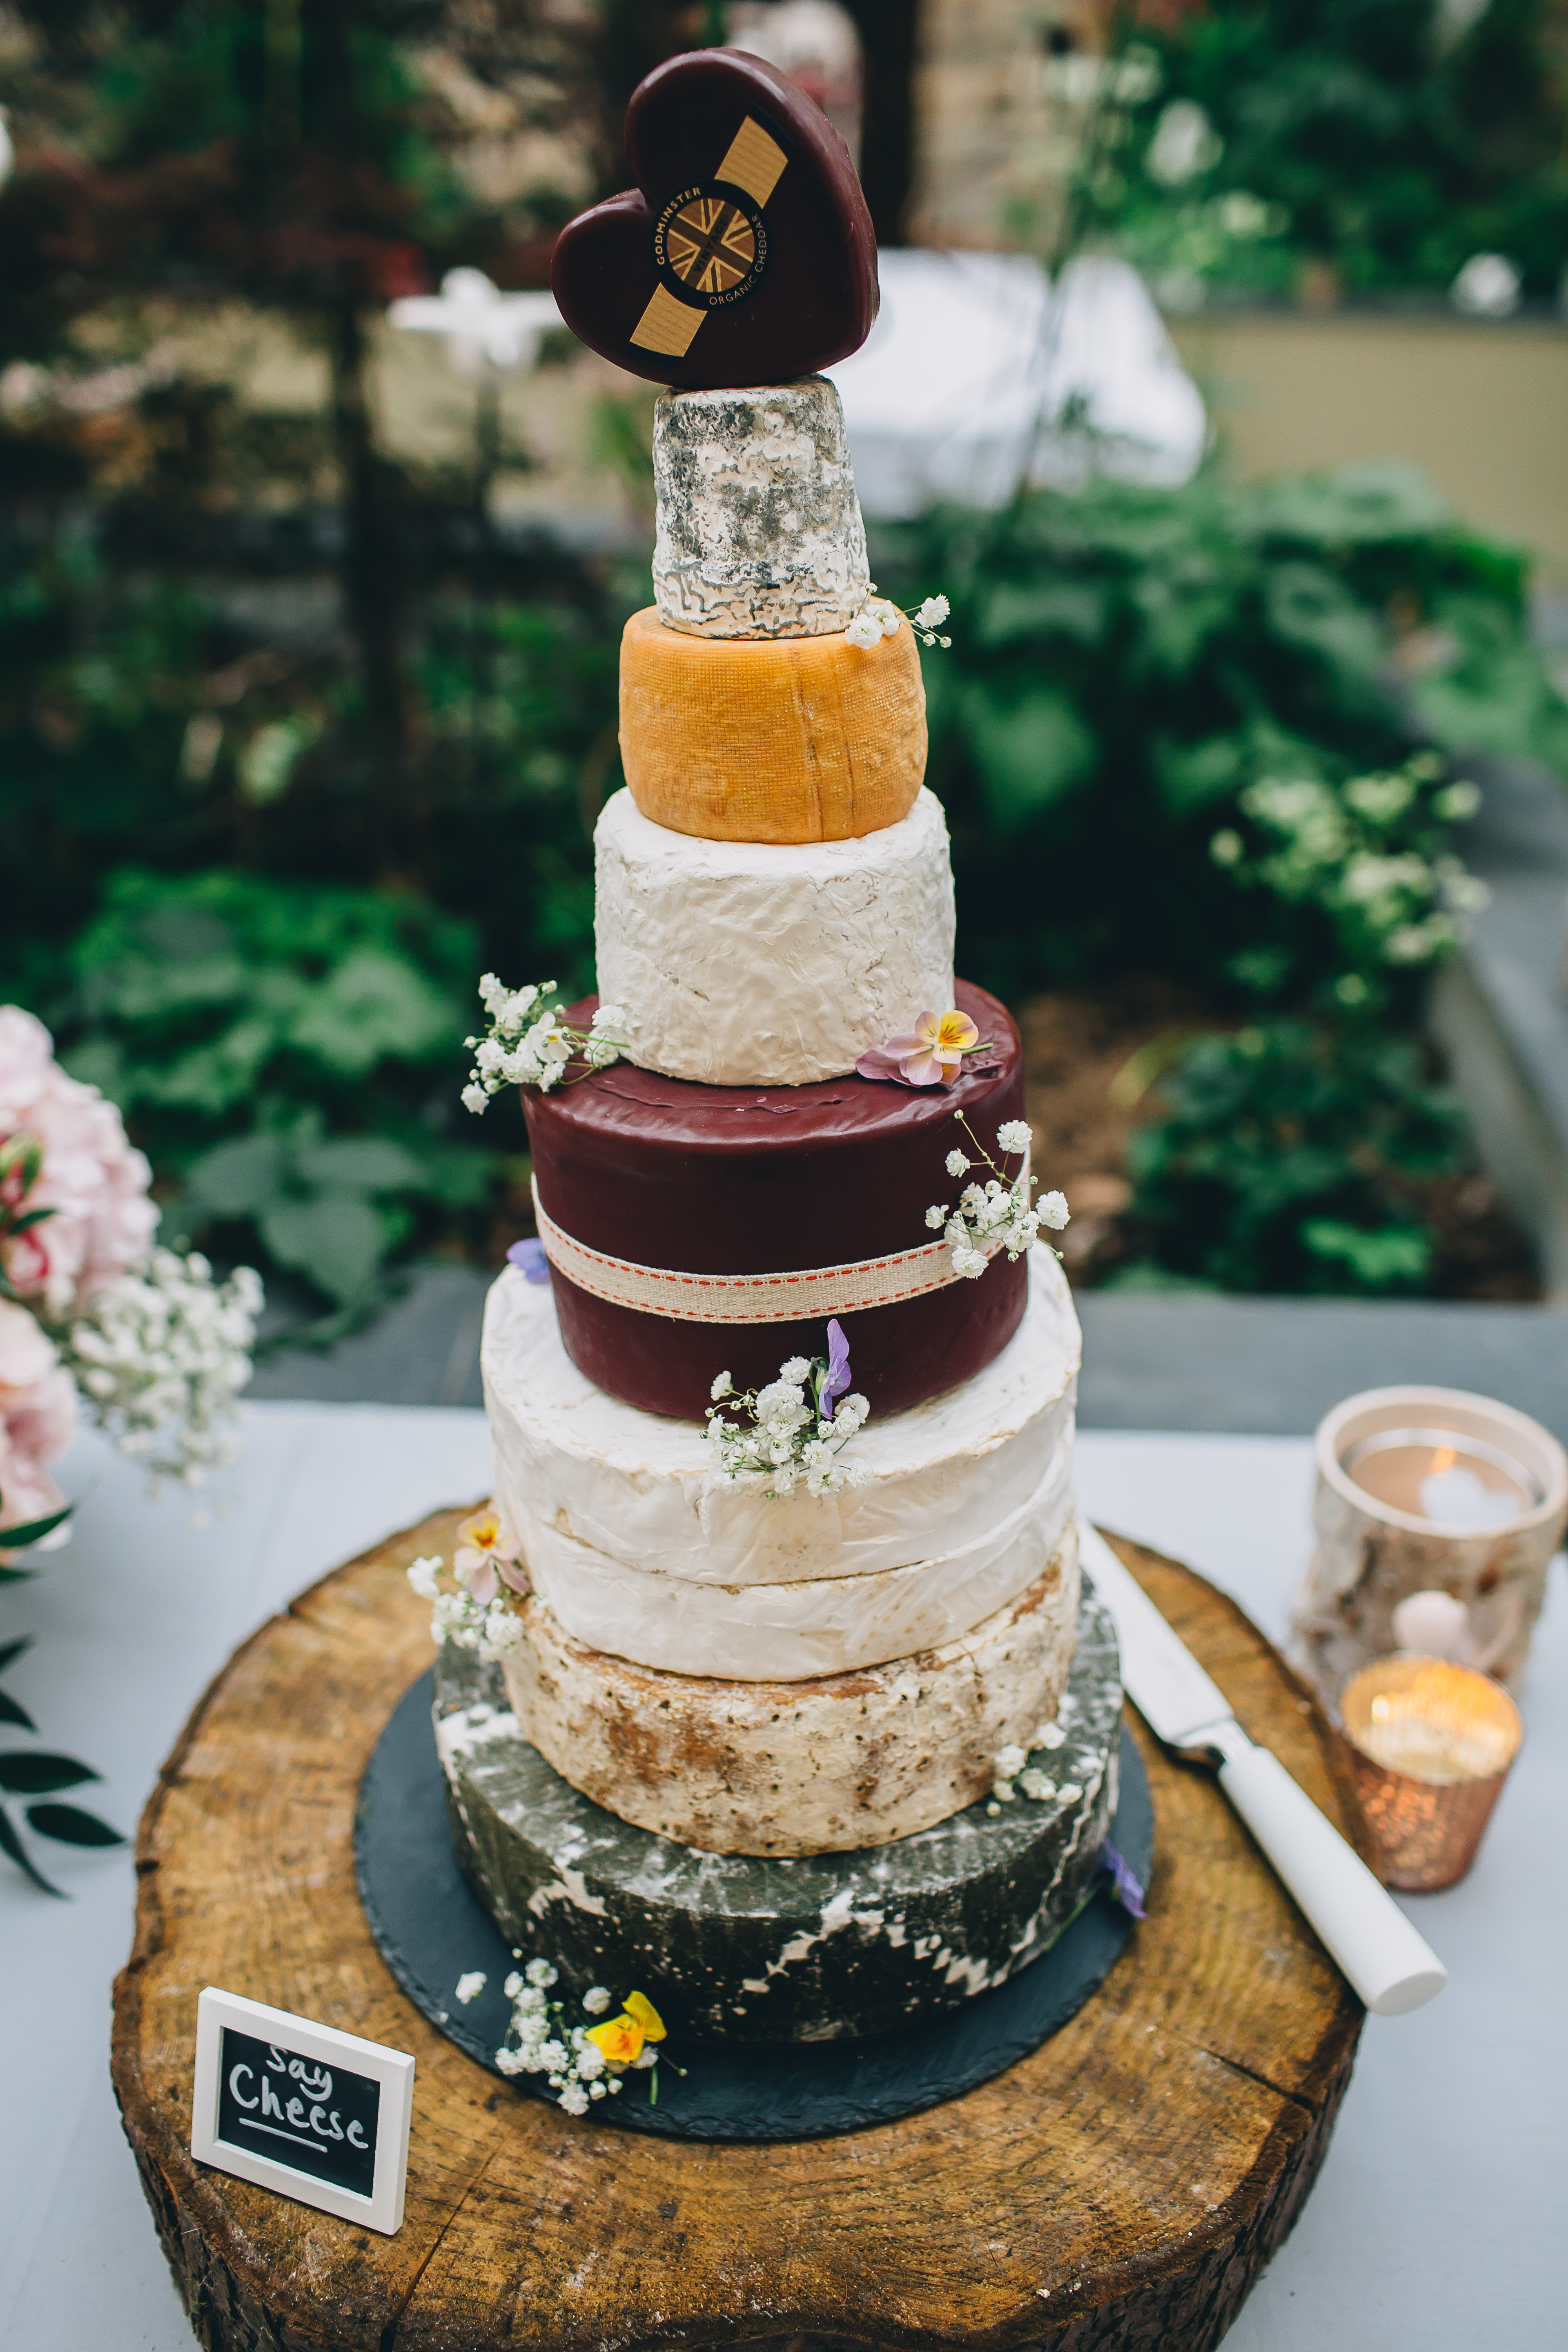 cheese, wheel, stinky, wedding, tower, cake, heart, ever after, cheese gromit, flower, fruit, leaves, ribbon, wax, colours, crackers